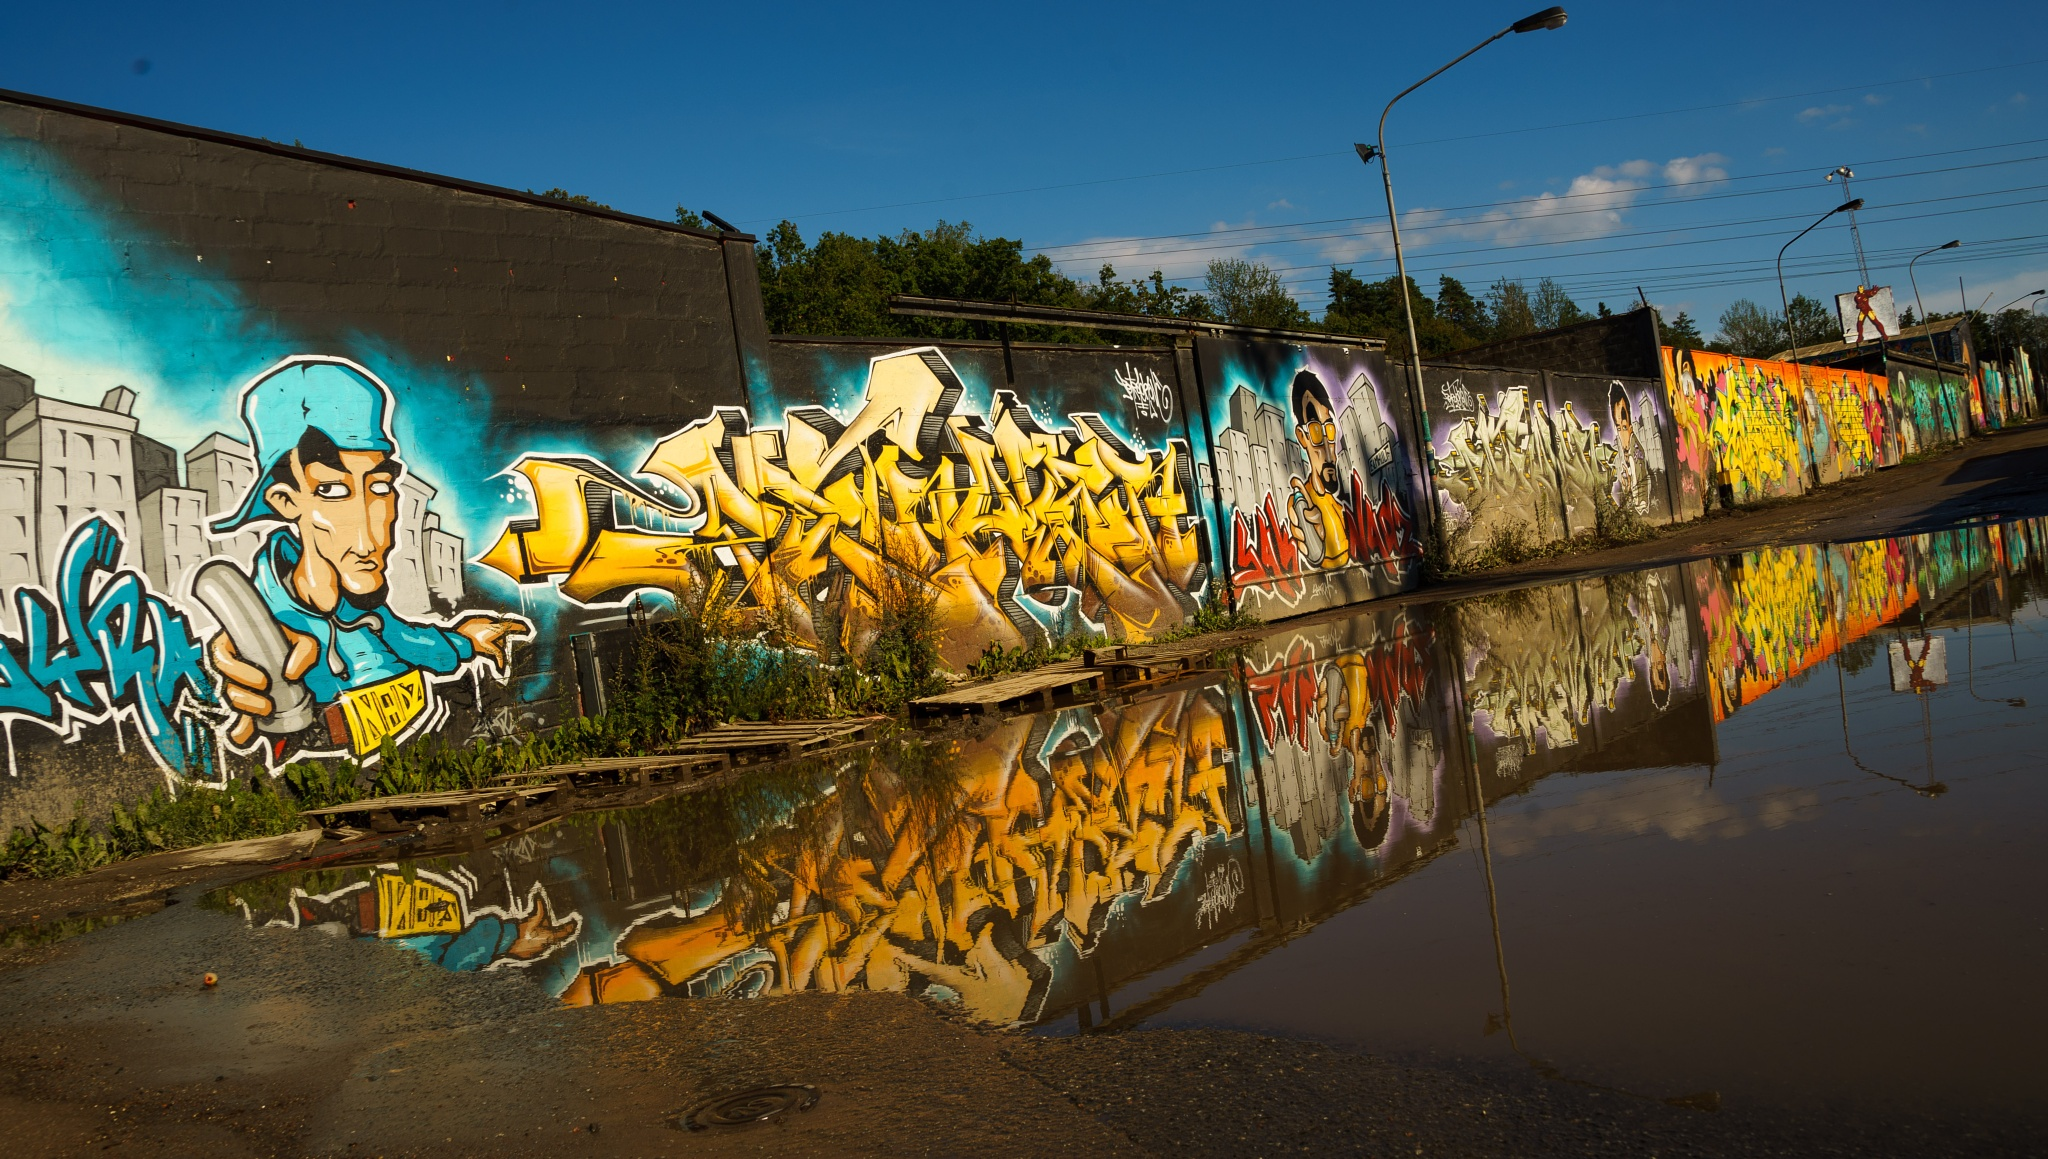 The painted street by MM